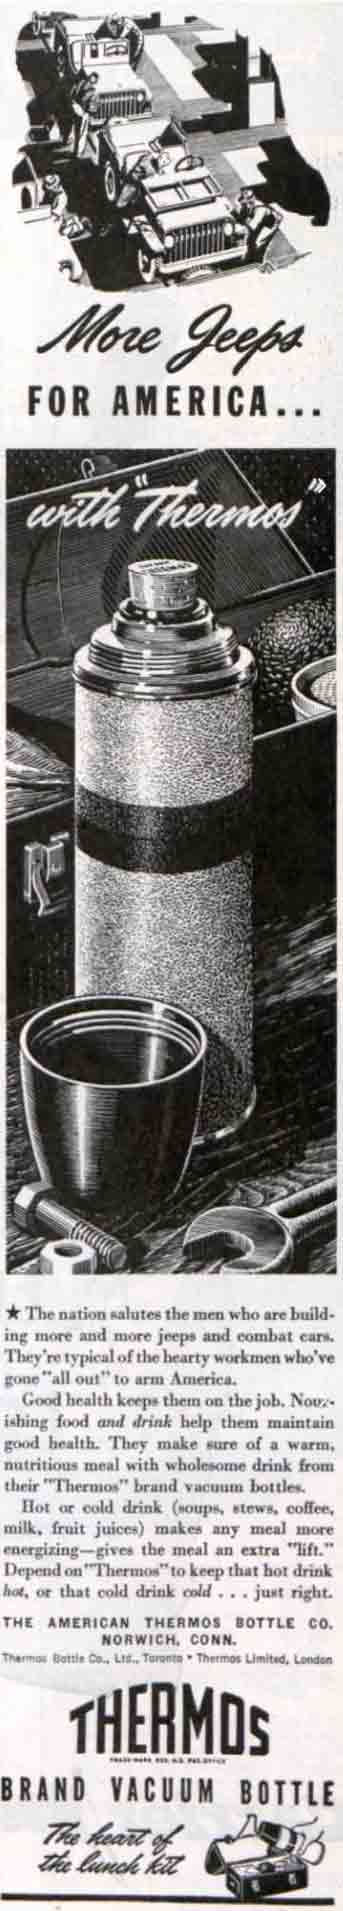 1943-05-22-sat-evening-post-us-thermos-more-jeeps-for-america-ad-pg63